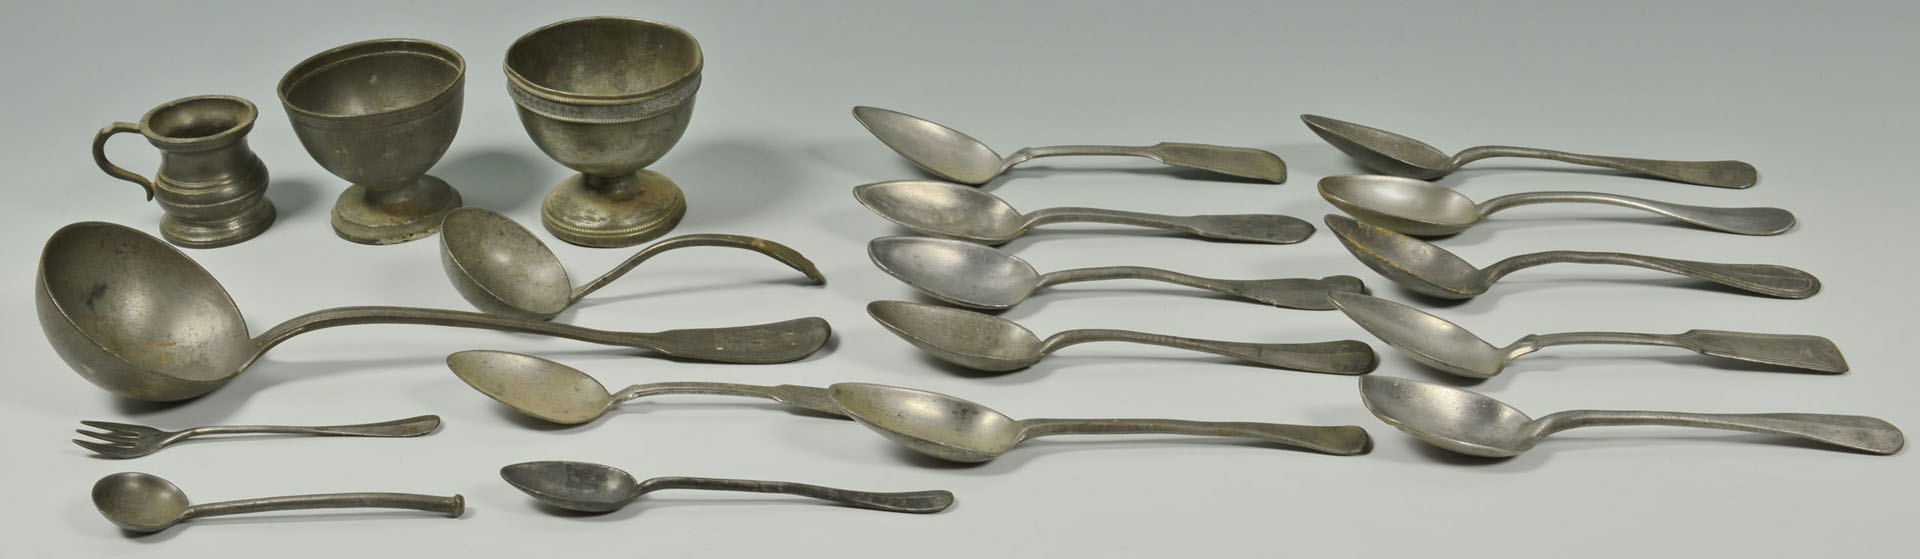 Lot 686: Large Grouping of Pewter, 30 pieces